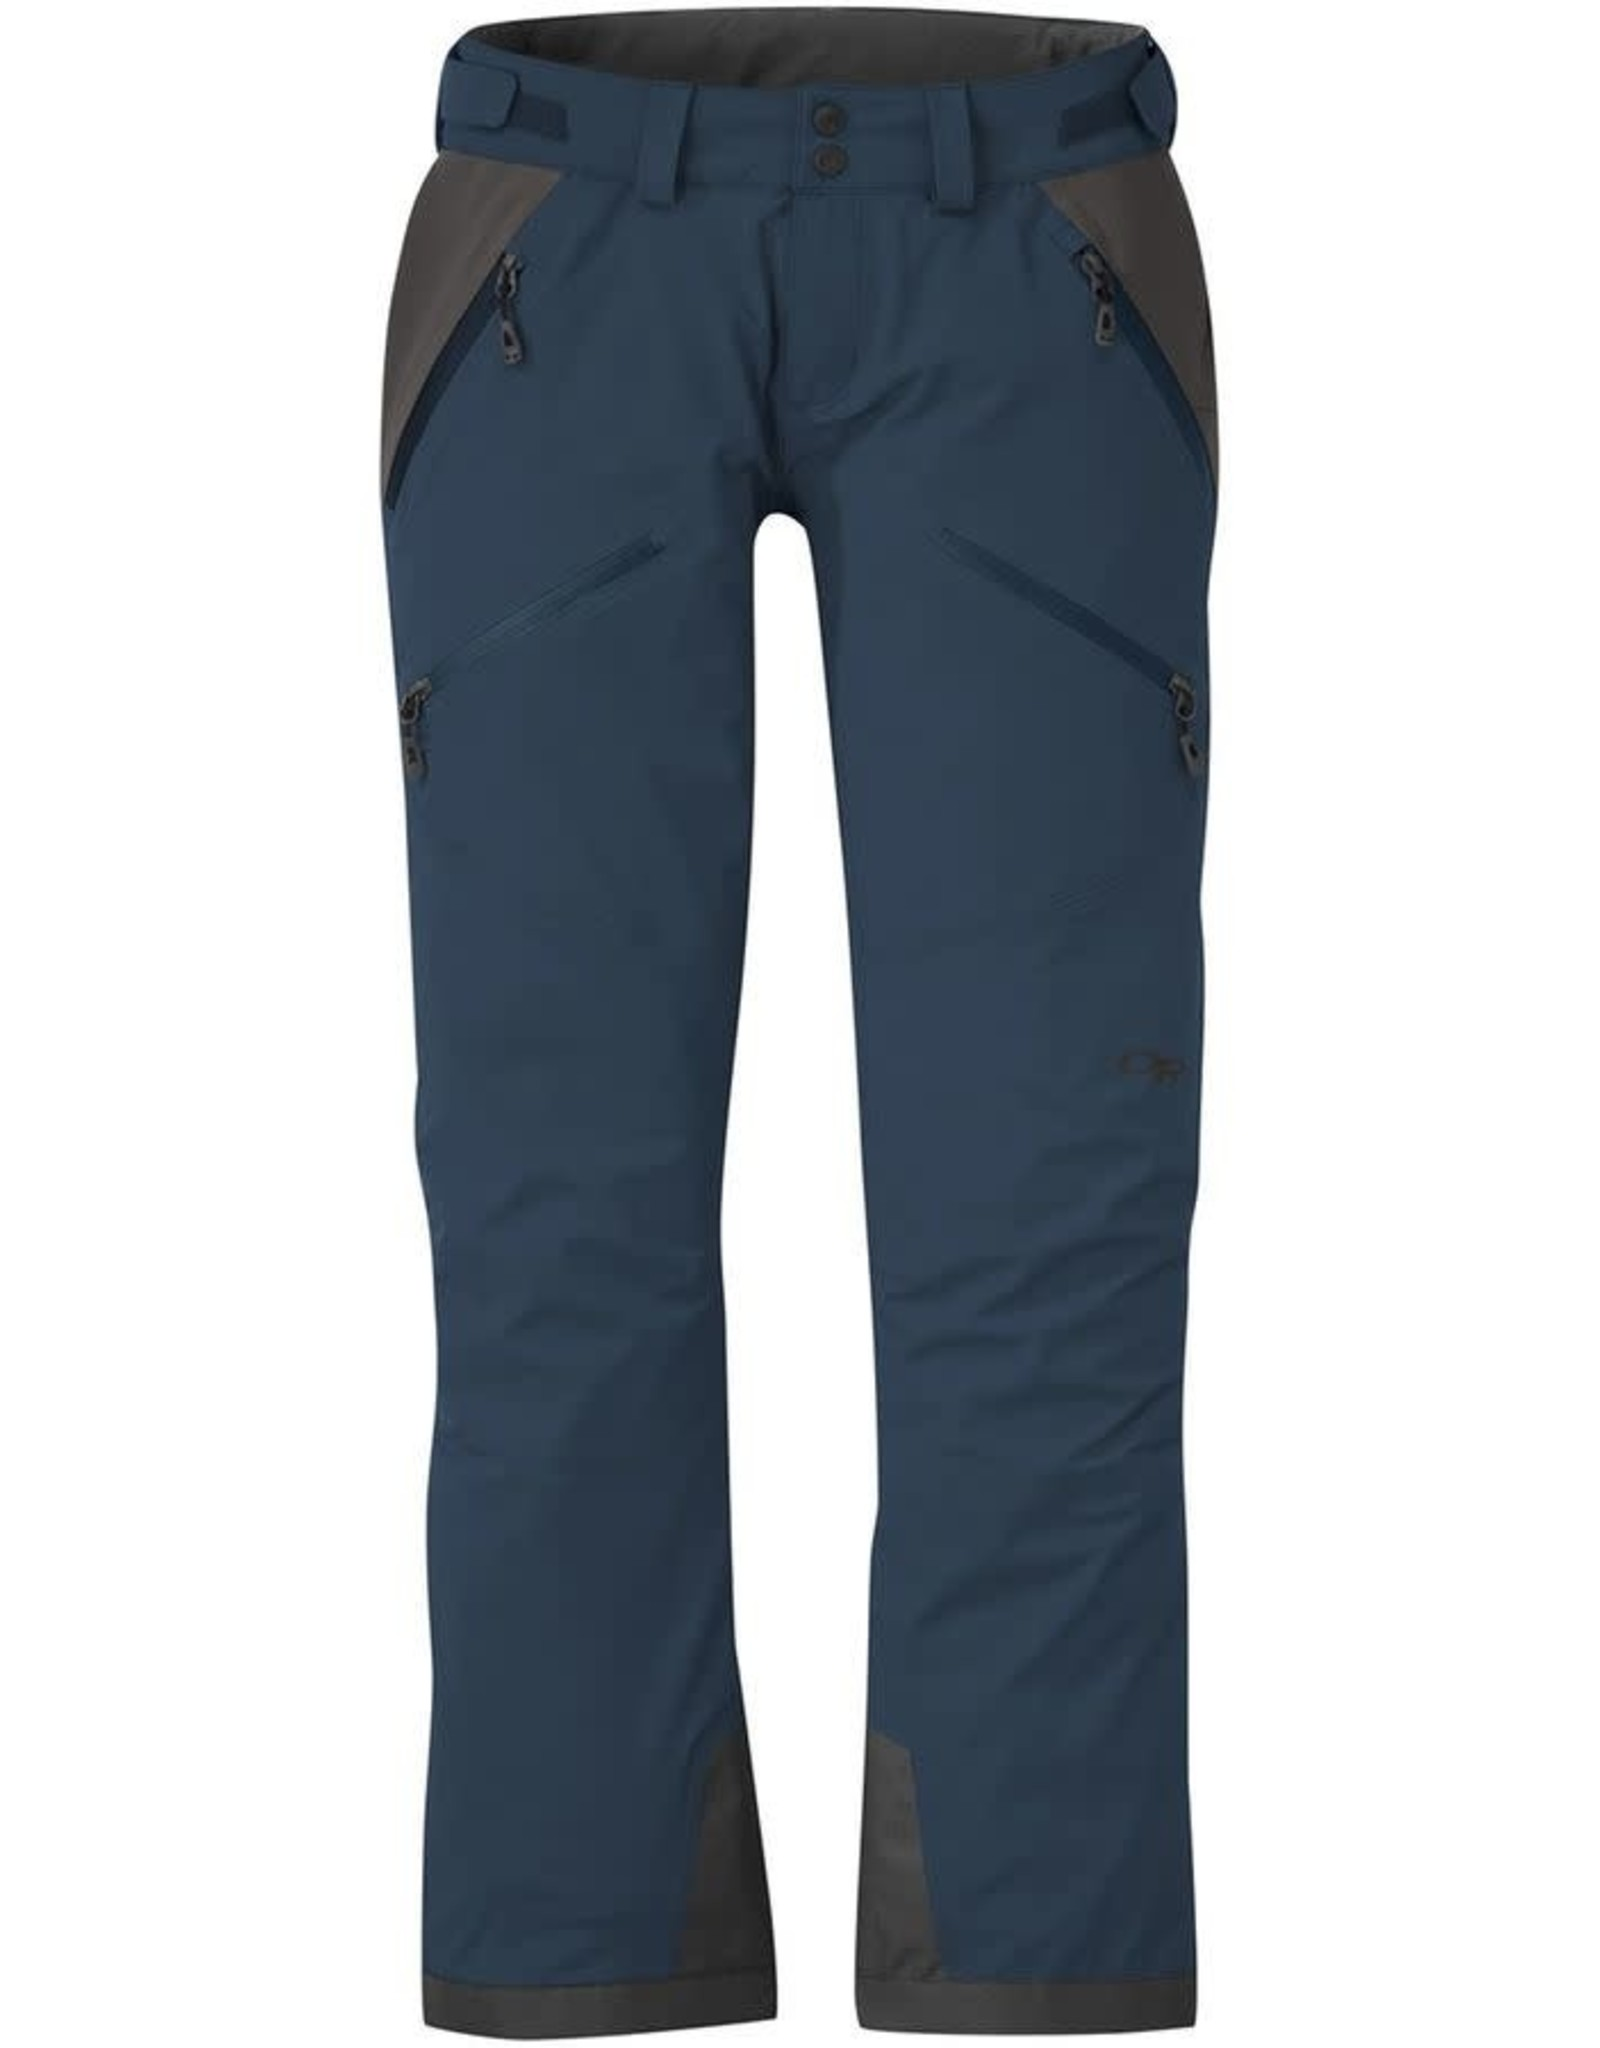 W's Skyward II Pants